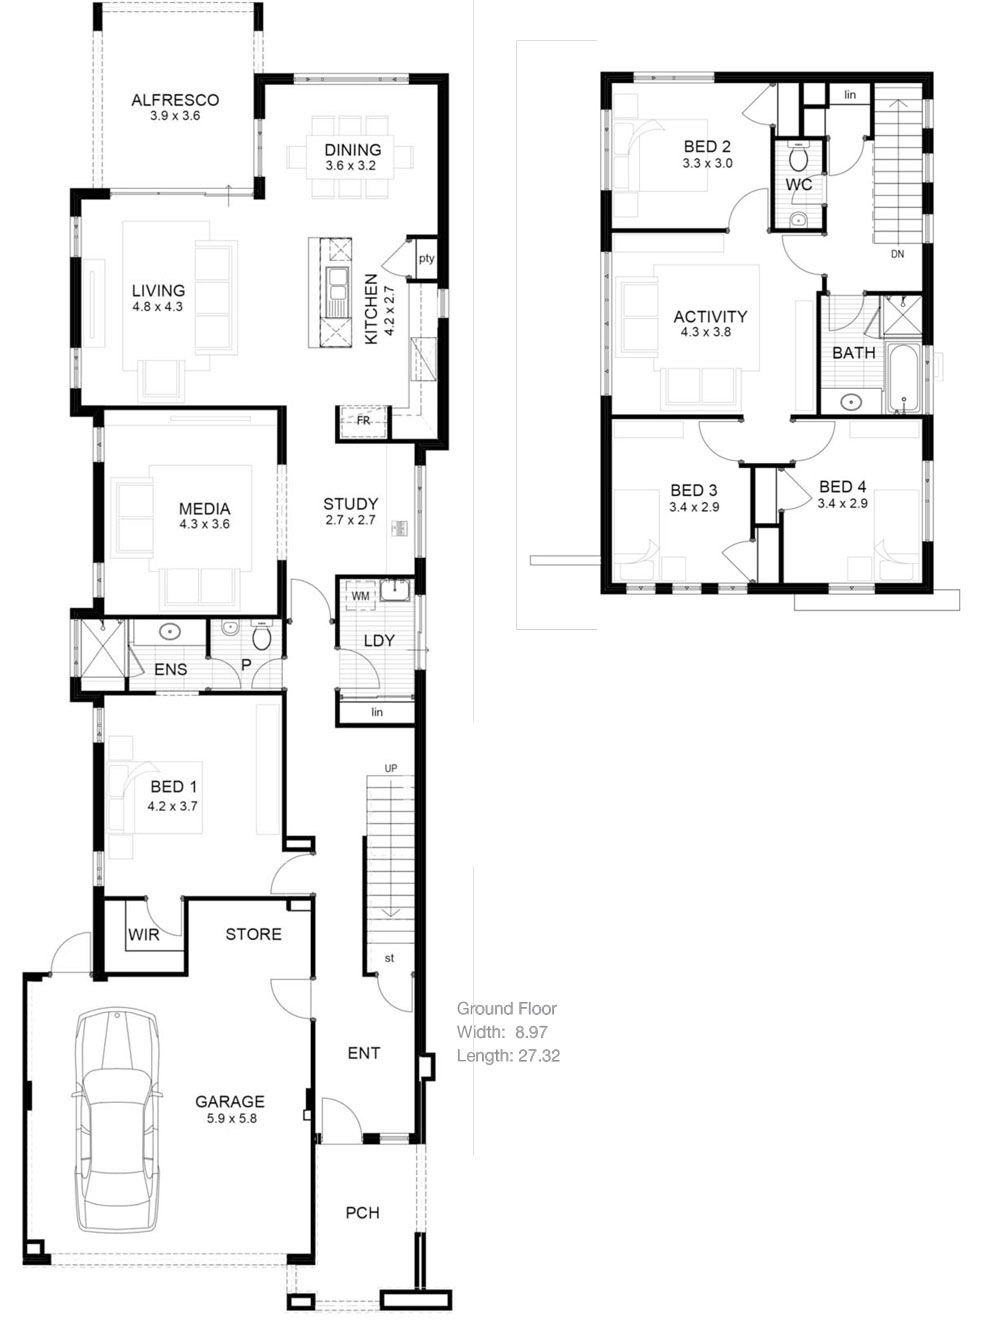 1000+ images about New house plans on Pinterest - ^